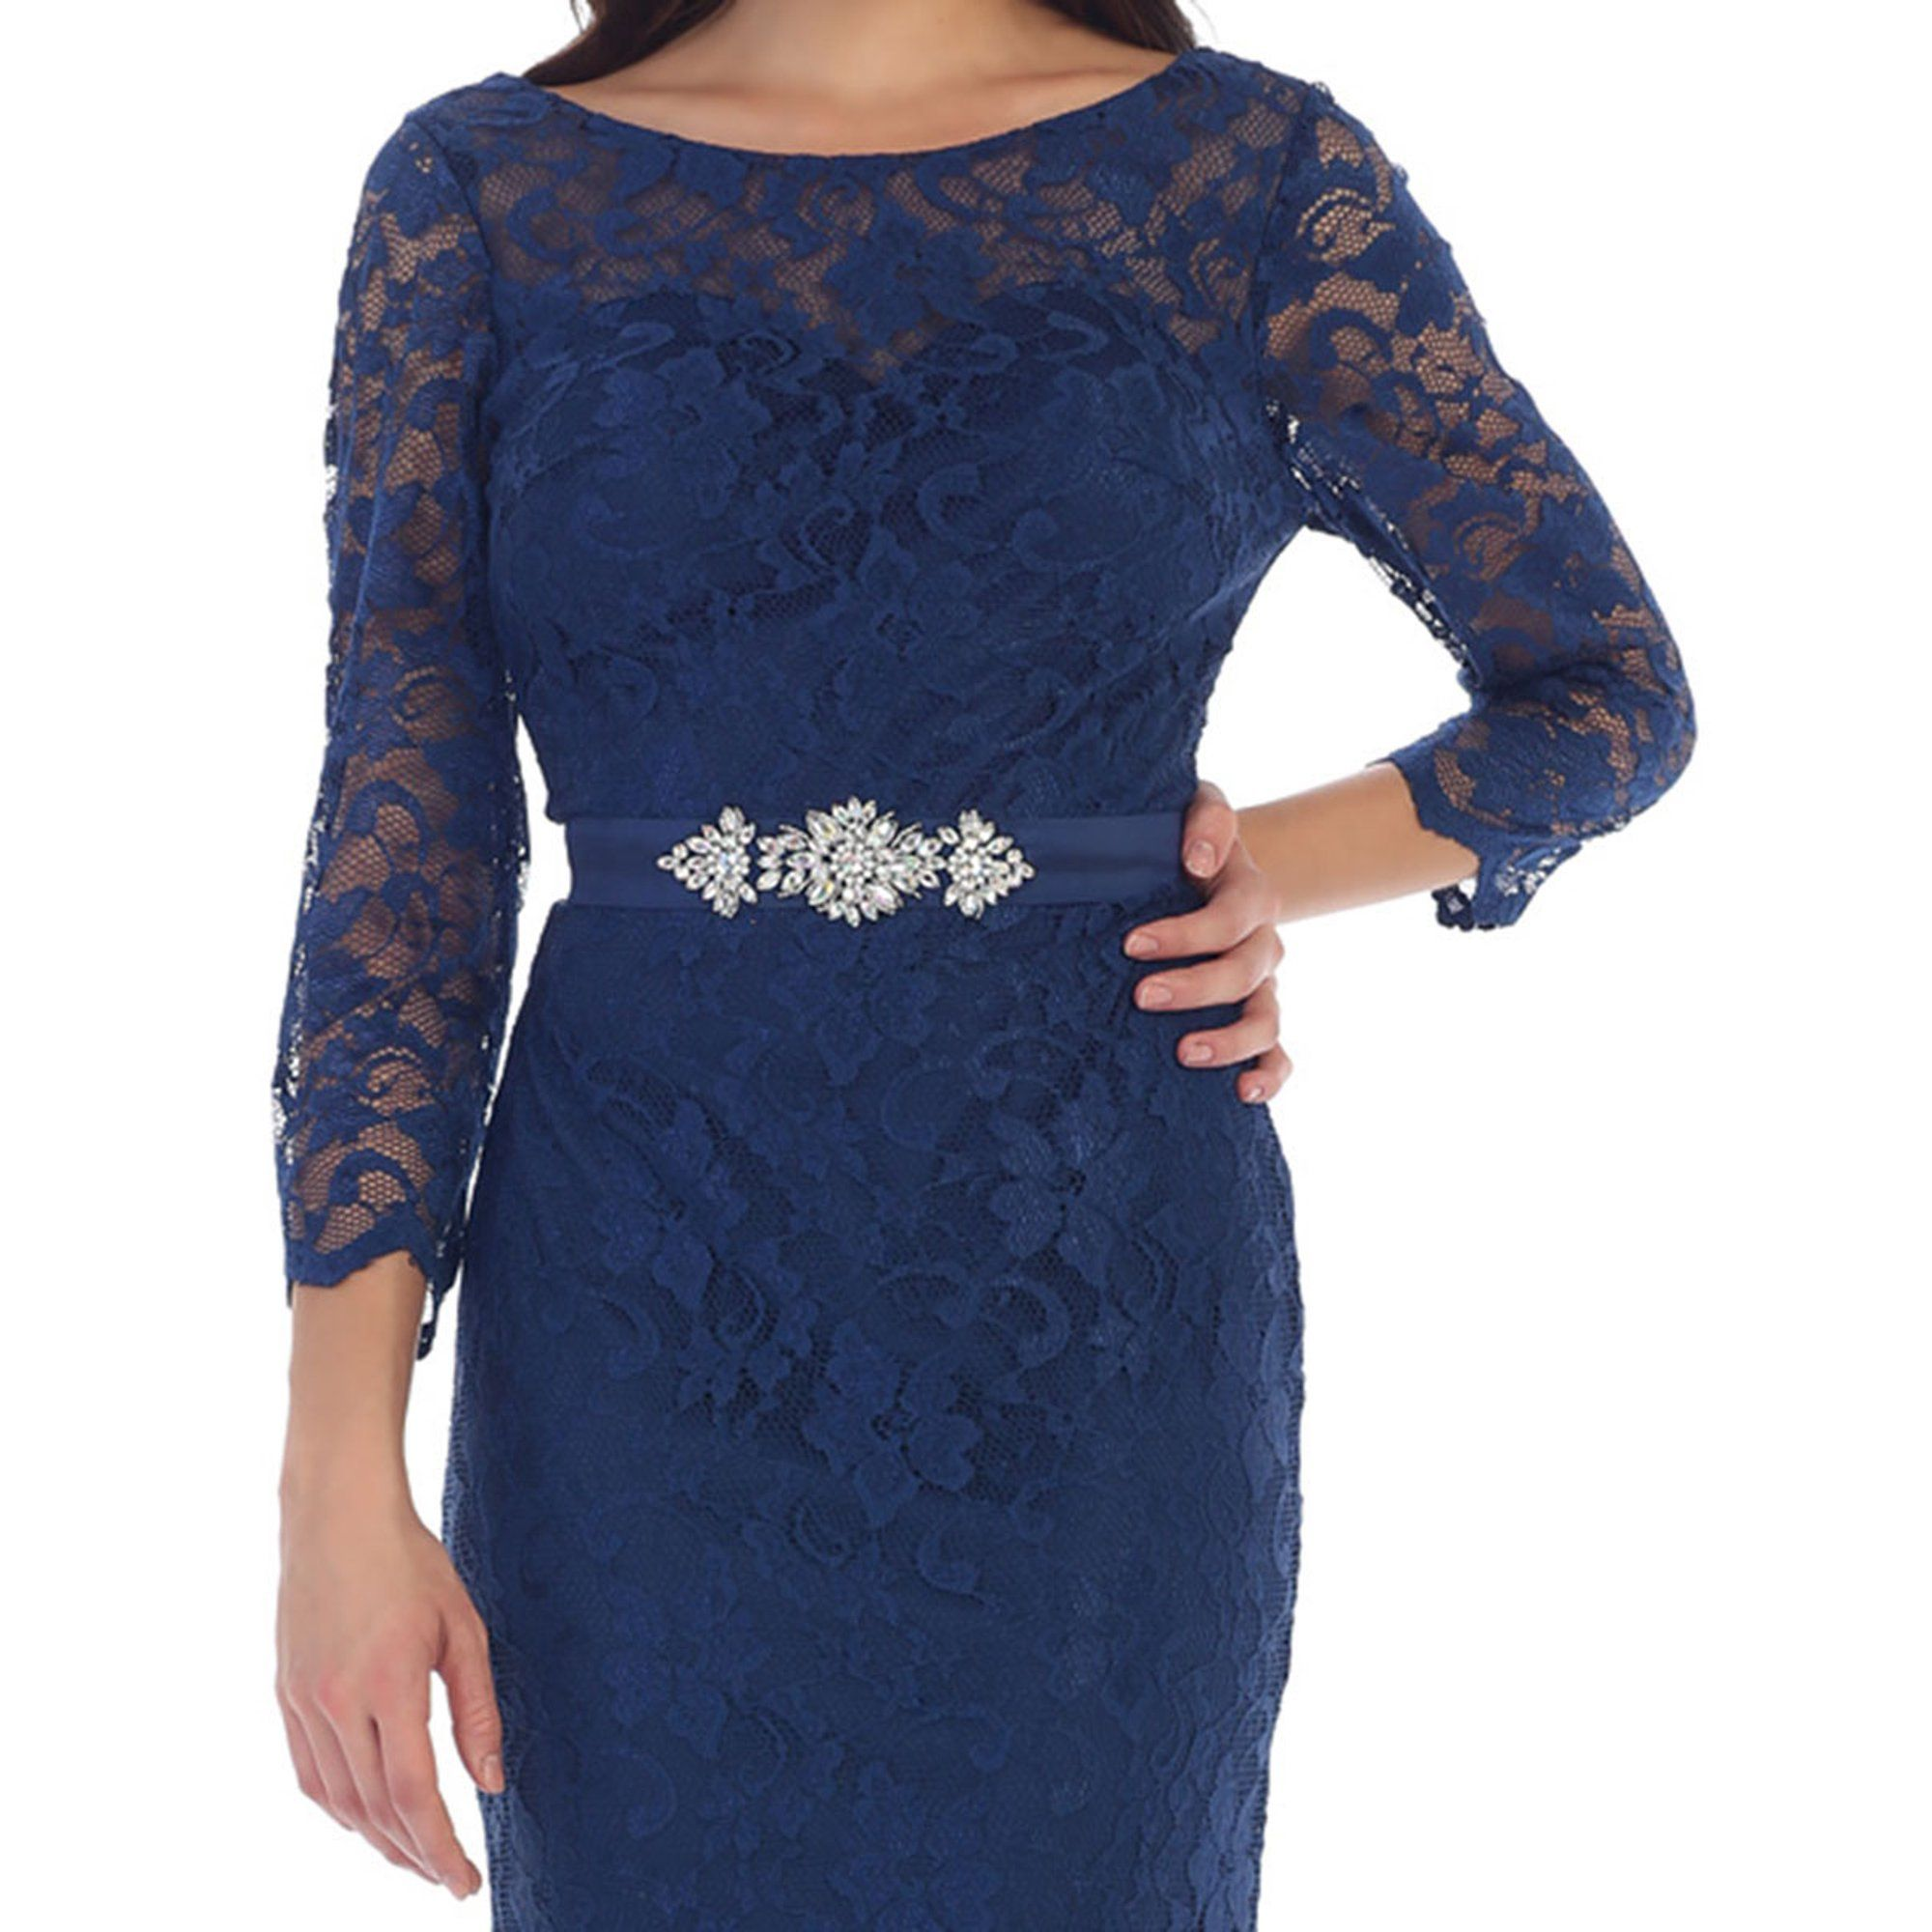 May Queen Elegant 3 4 Sleeve Lace Evening Gown Plus Size Walmart Com In 2021 Lace Evening Gowns Evening Gowns With Sleeves Evening Gowns [ 2000 x 2000 Pixel ]